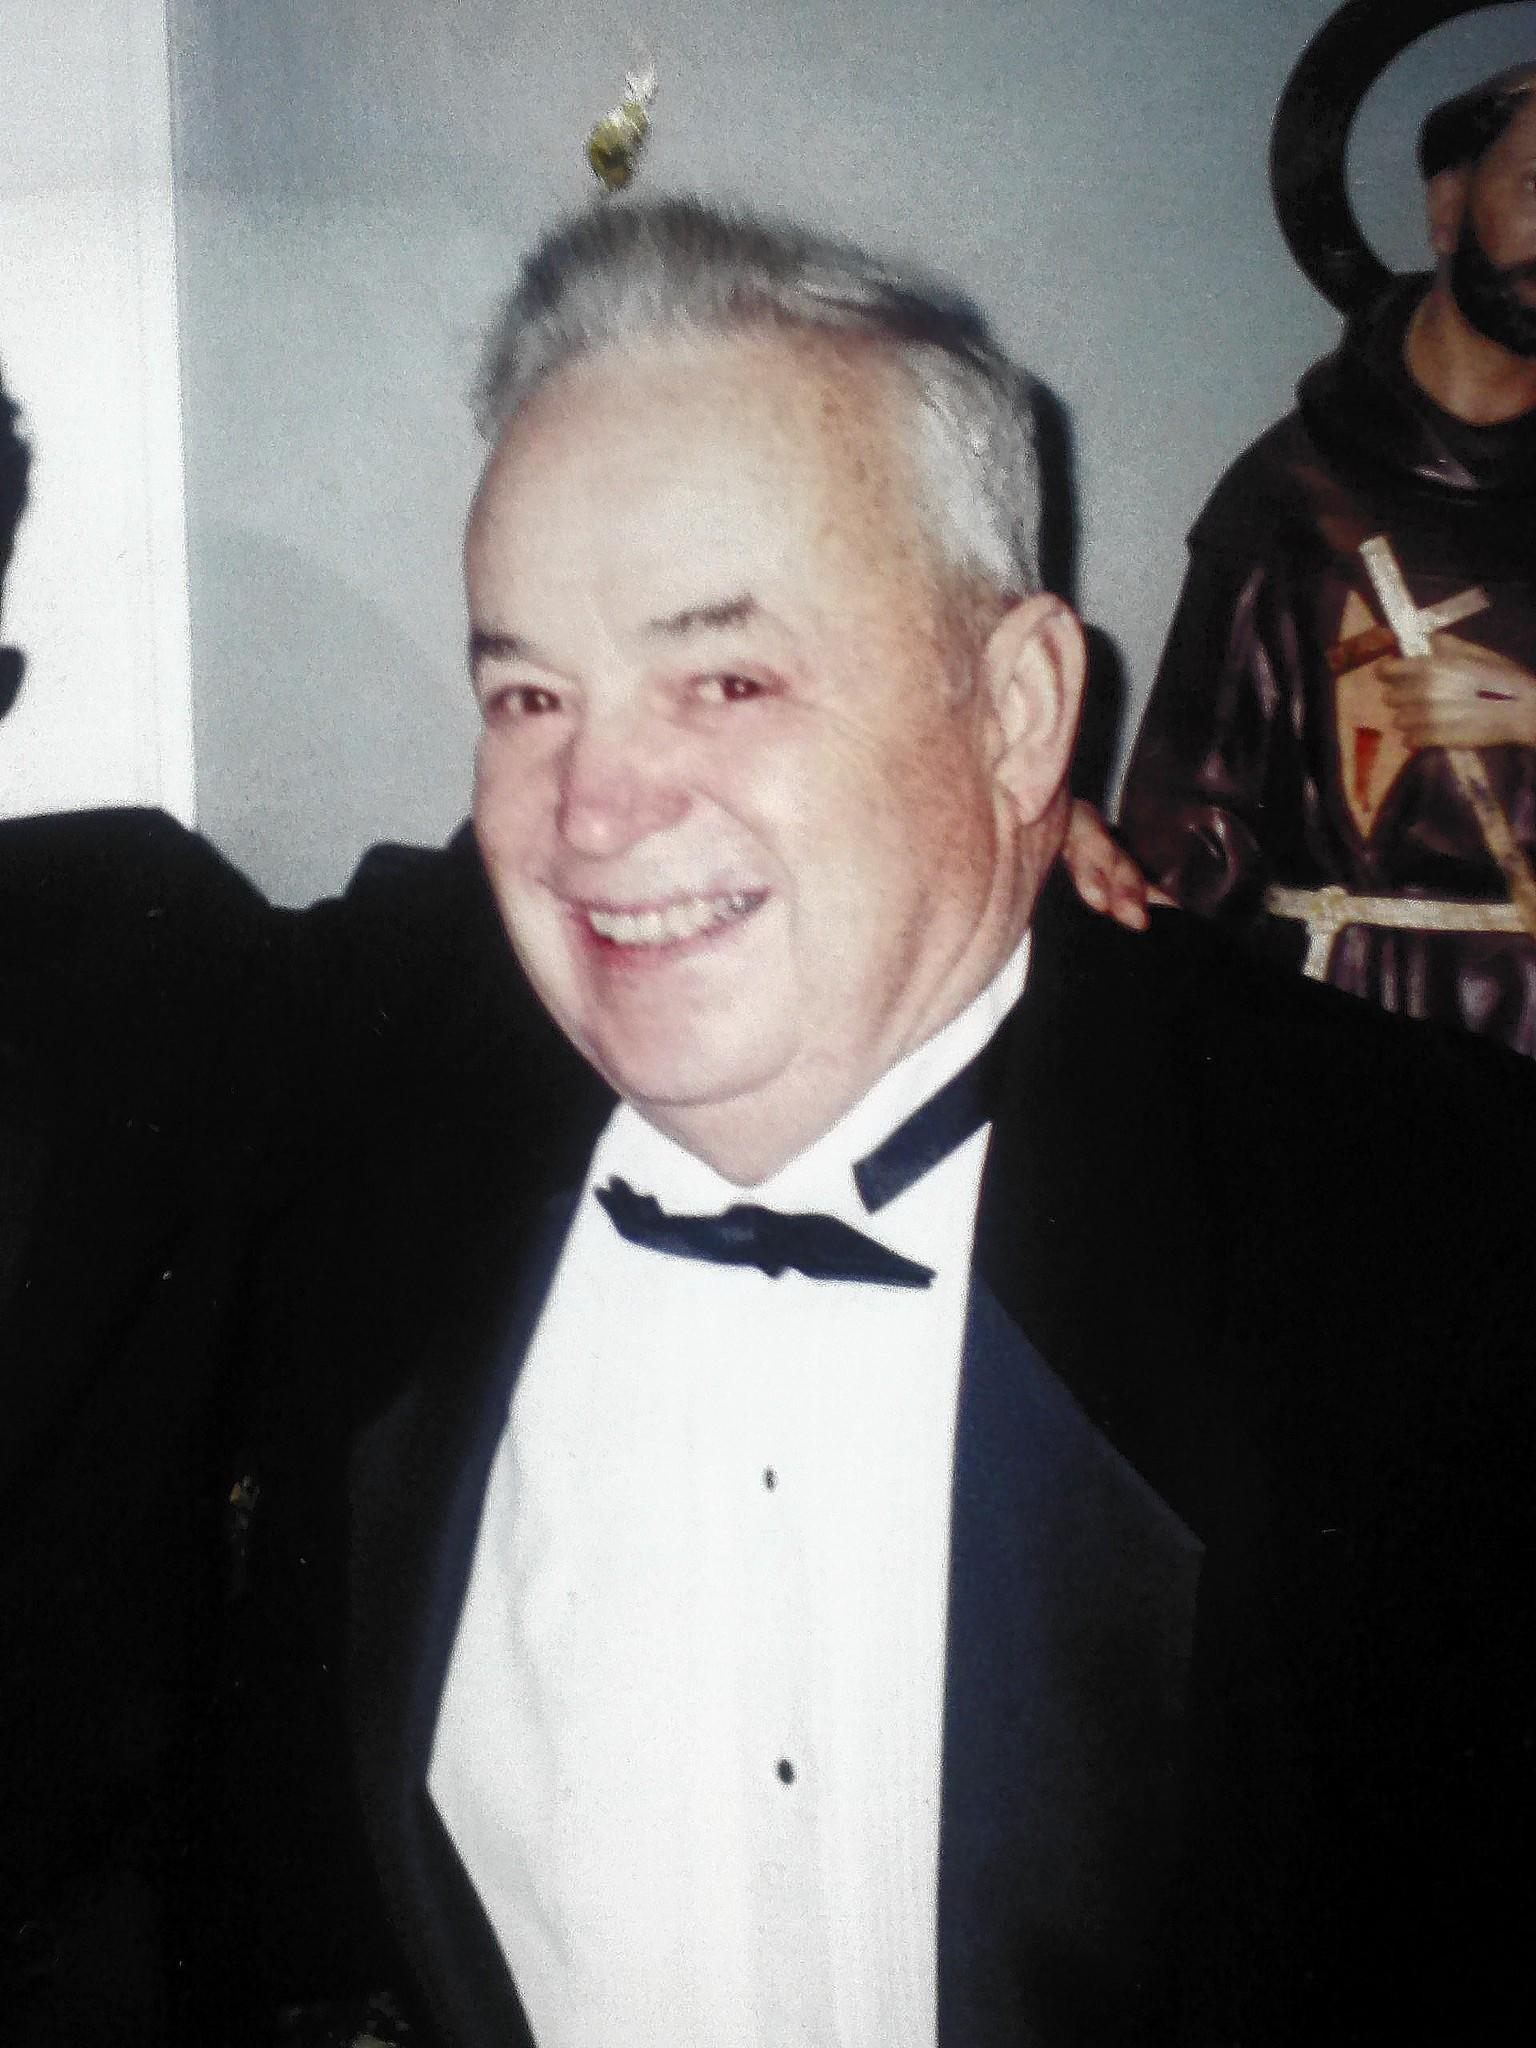 Kenneth Gagnon helped put Chicago on the big screen.